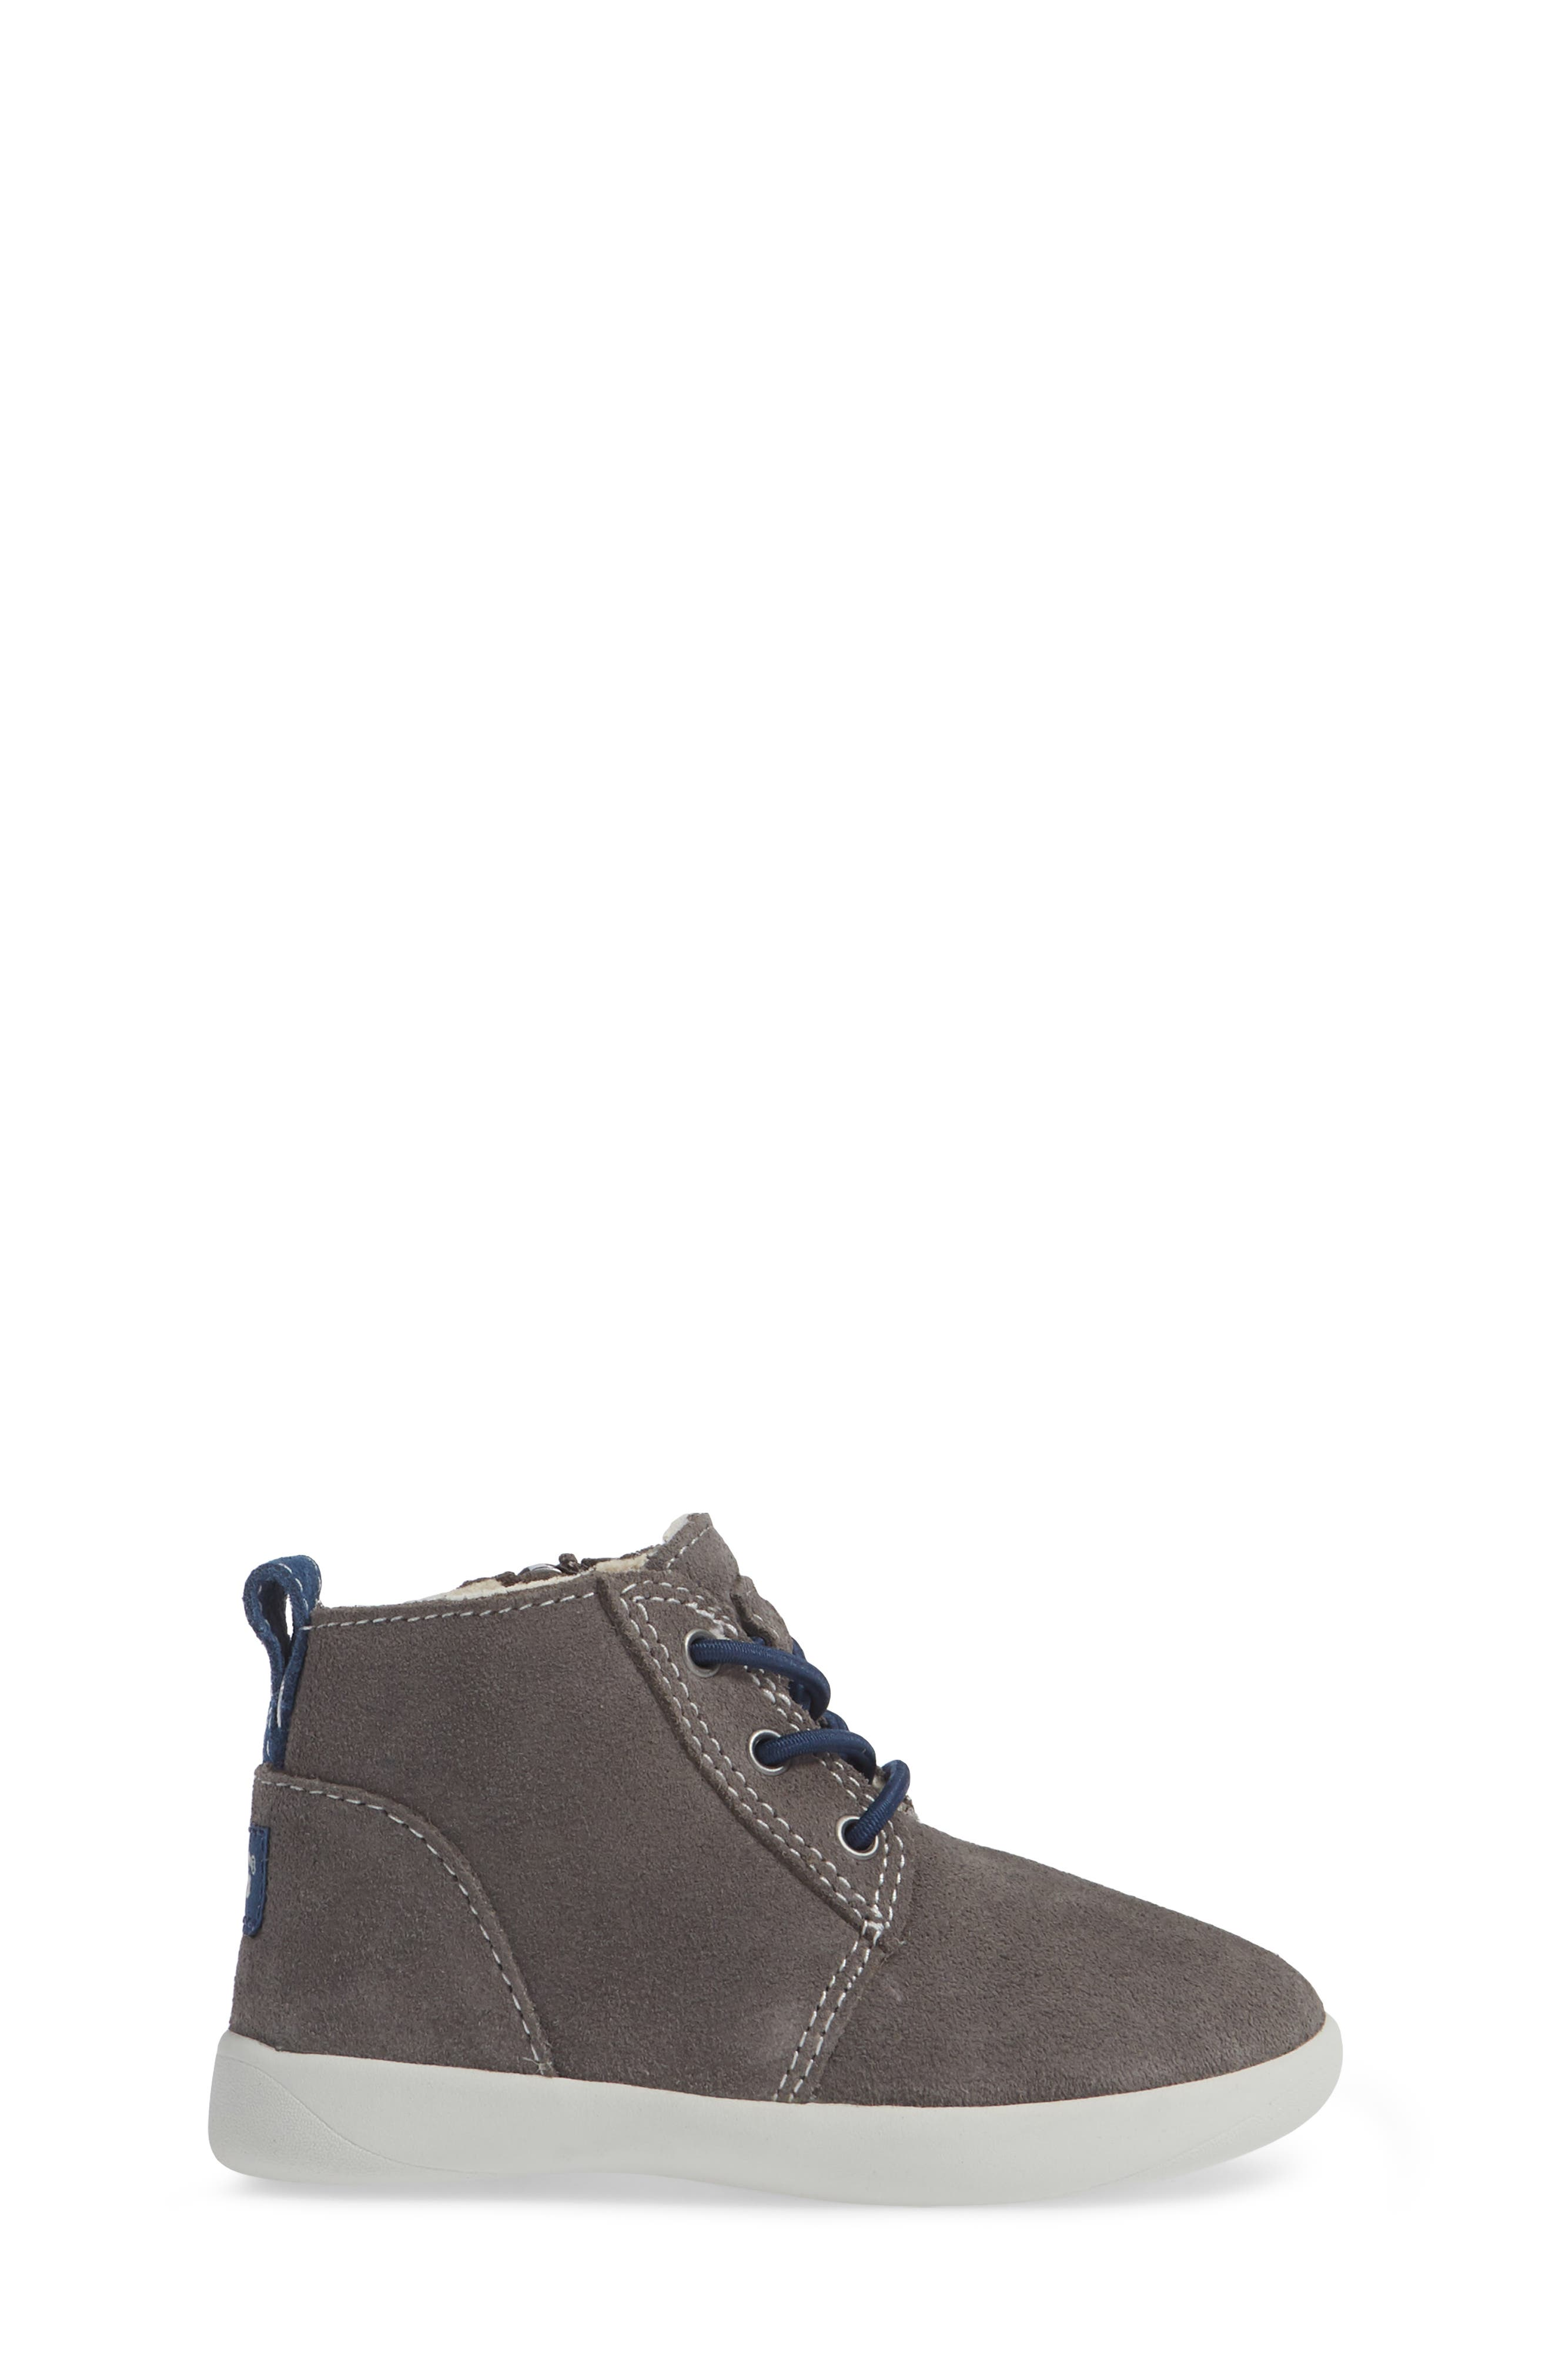 Kristjan Chukka Bootie Sneaker,                             Alternate thumbnail 4, color,                             Charcoal Grey